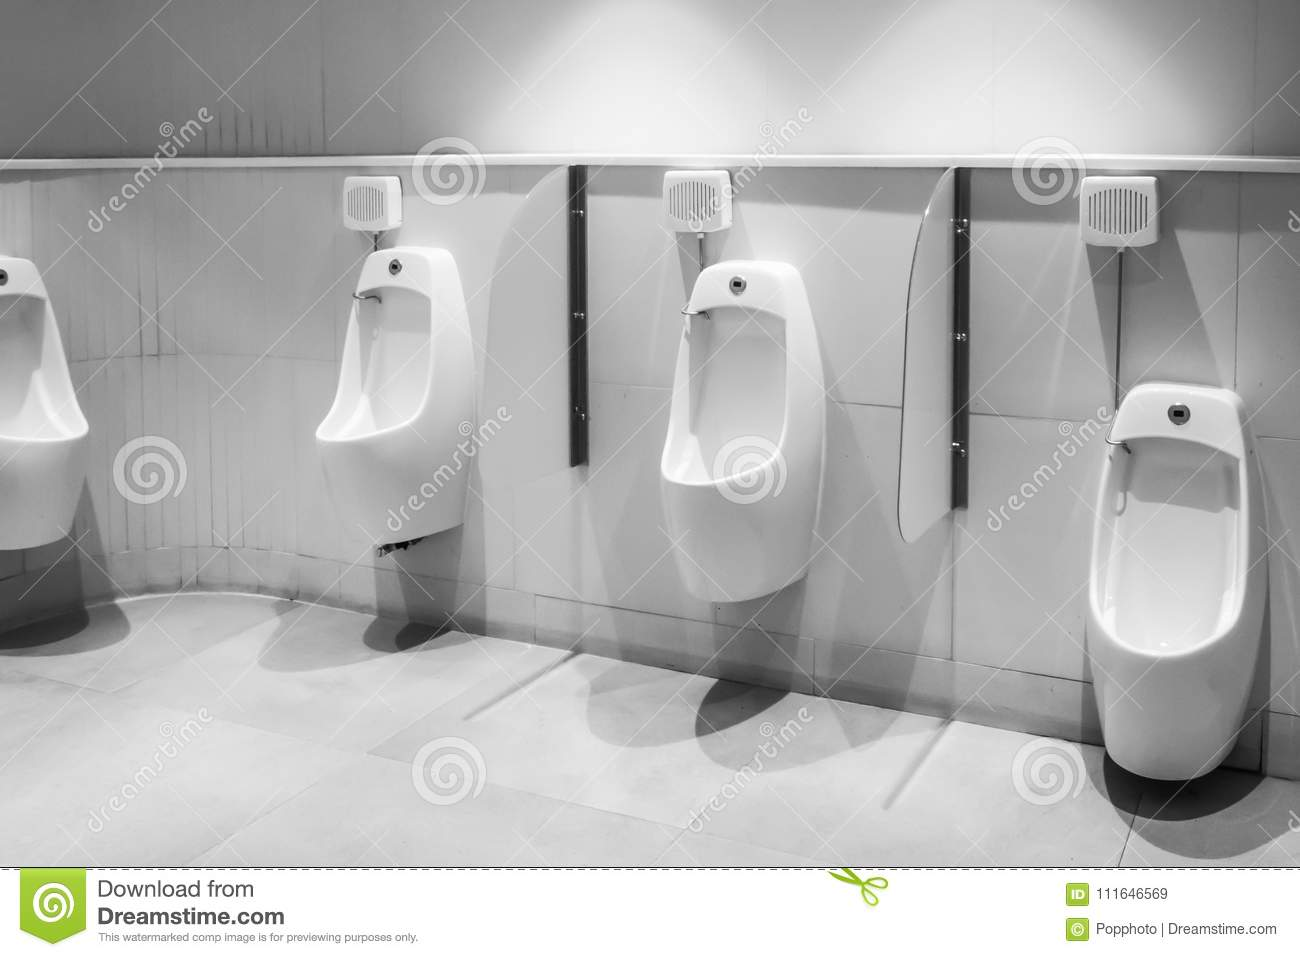 Line Of White Porcelain Urinals In Clean, Light Public To